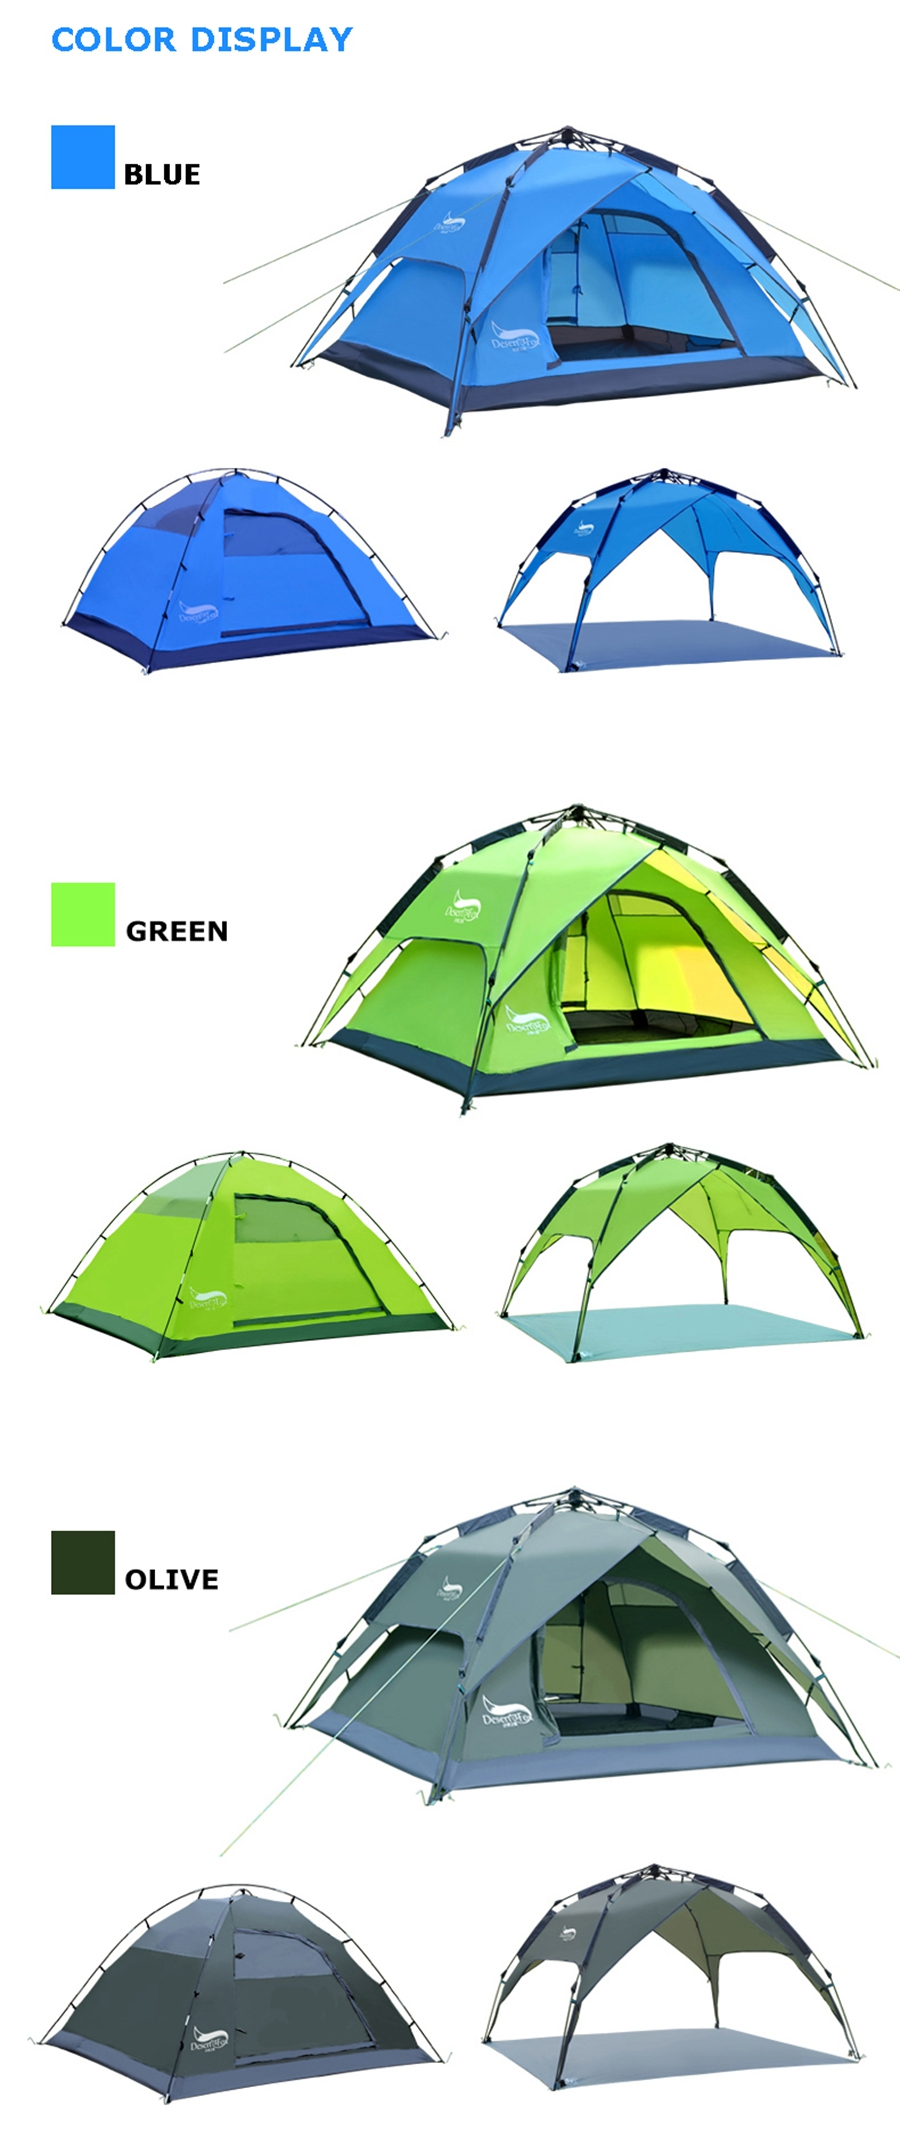 Desert&Fox Automatic Camping Tent, 3-4 Person Family Tent Double Layer Instant Setup Protable Backpacking Tent for Hiking Travel 7